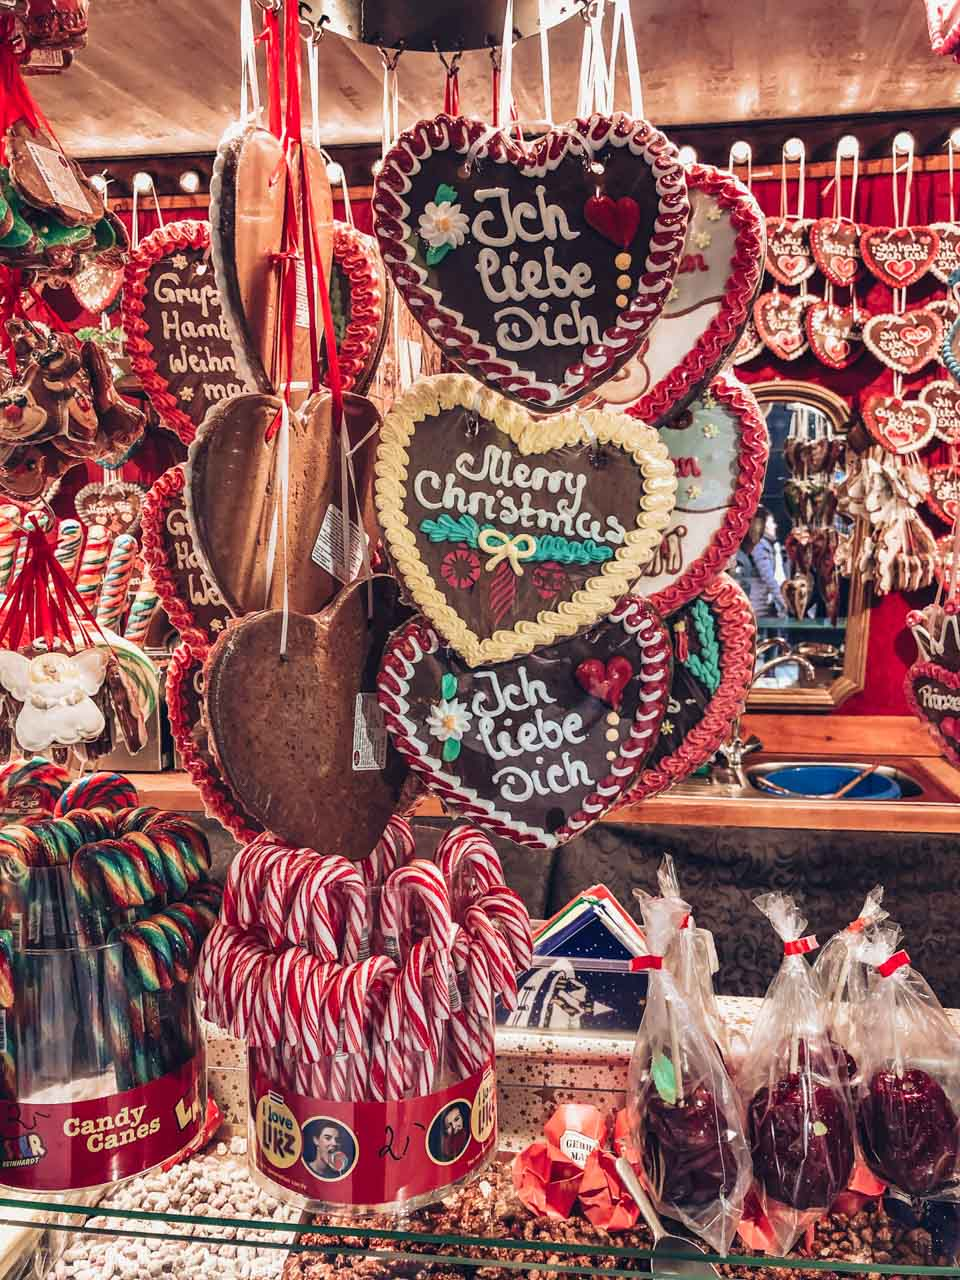 Heart-shaped gingerbread at a Christmas market